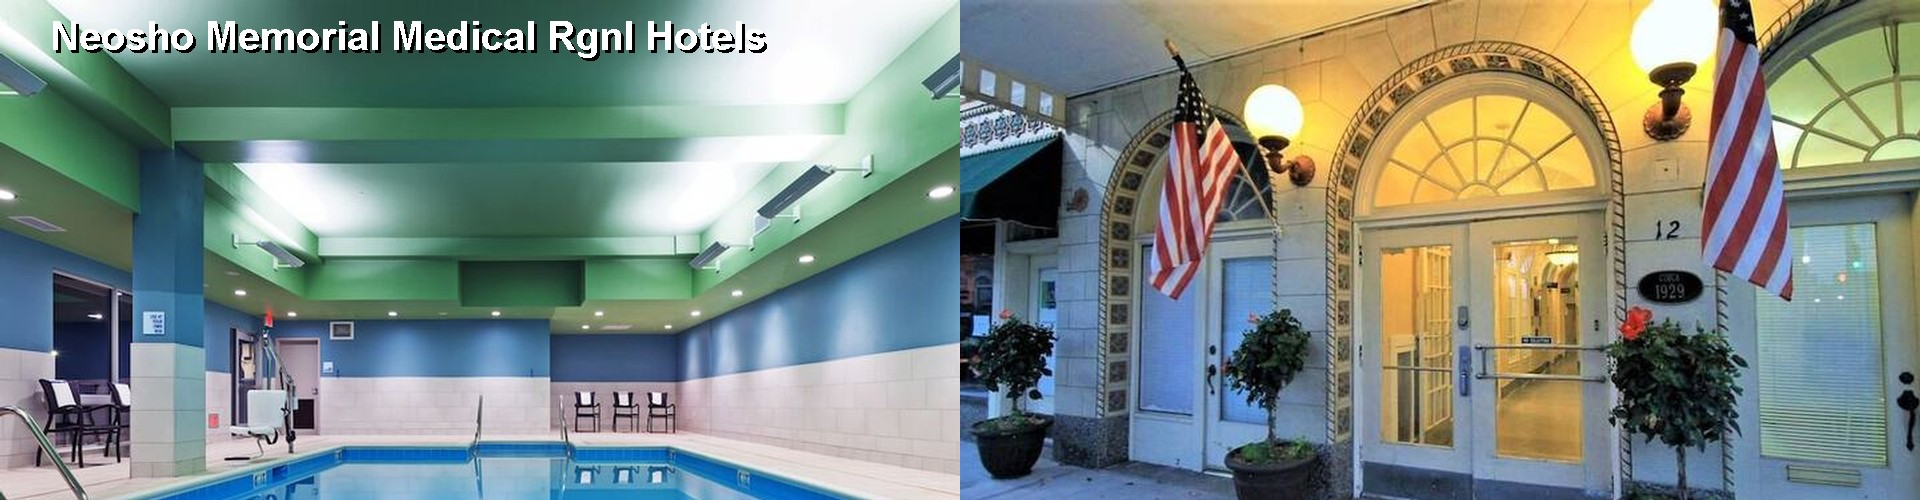 5 Best Hotels near Neosho Memorial Medical Rgnl